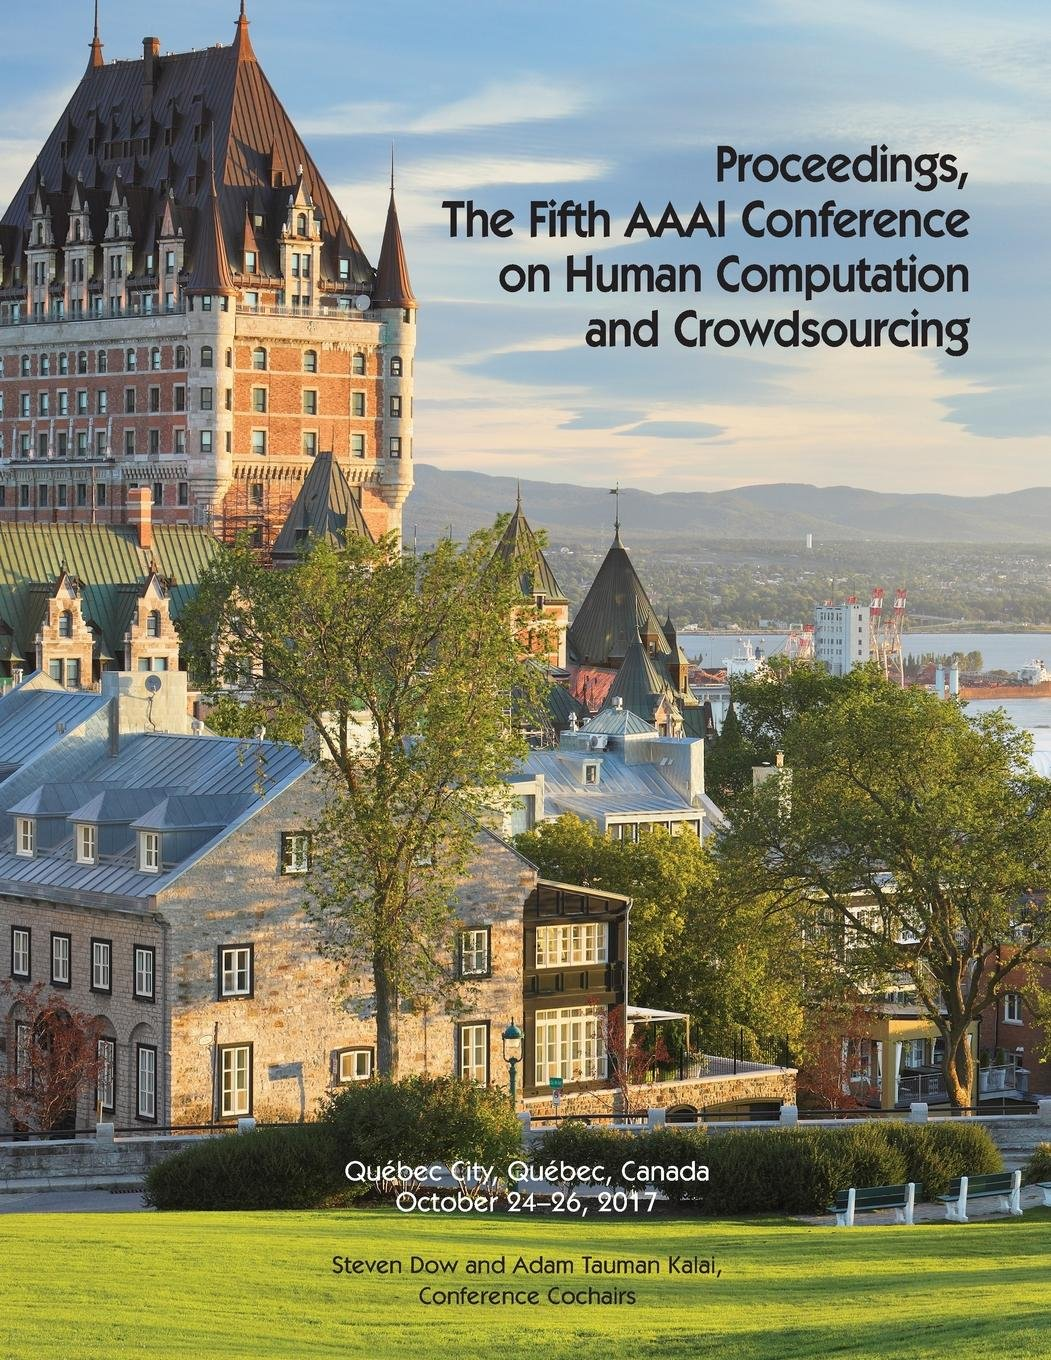 Proceedings, the Fifth AAAI Conference on Human Computation and Crowdsourcing (Hcomp 2017)